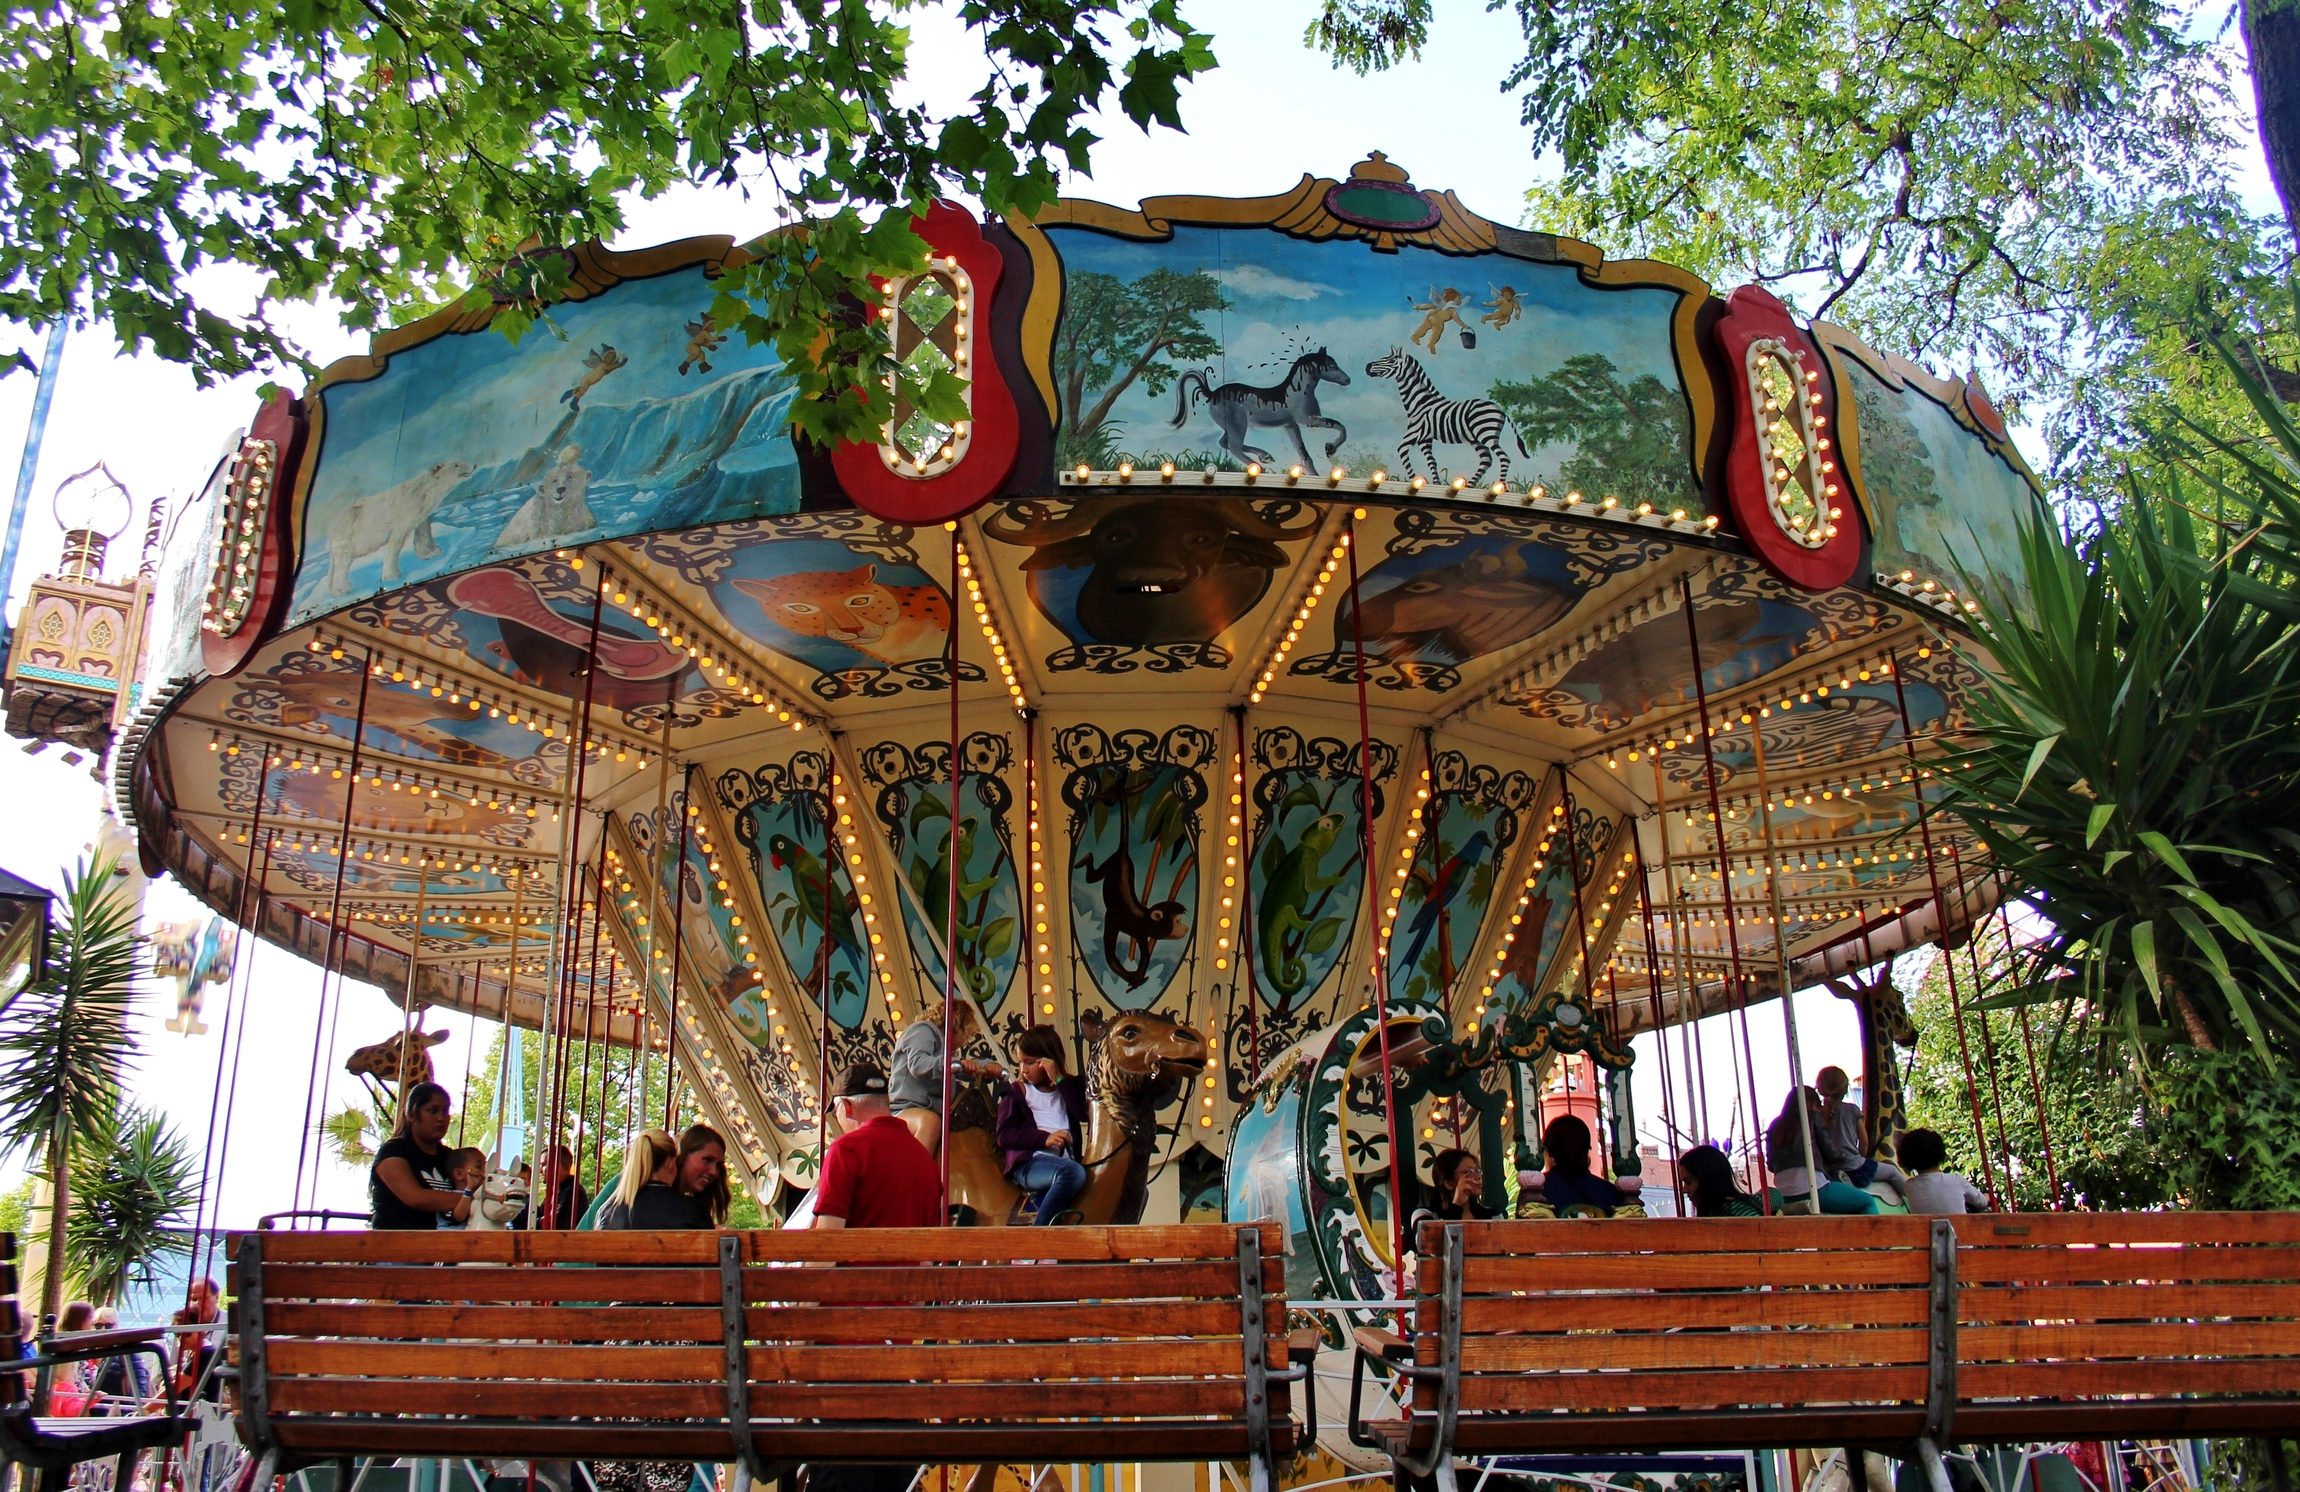 The Carousel at Tivoli amusement park